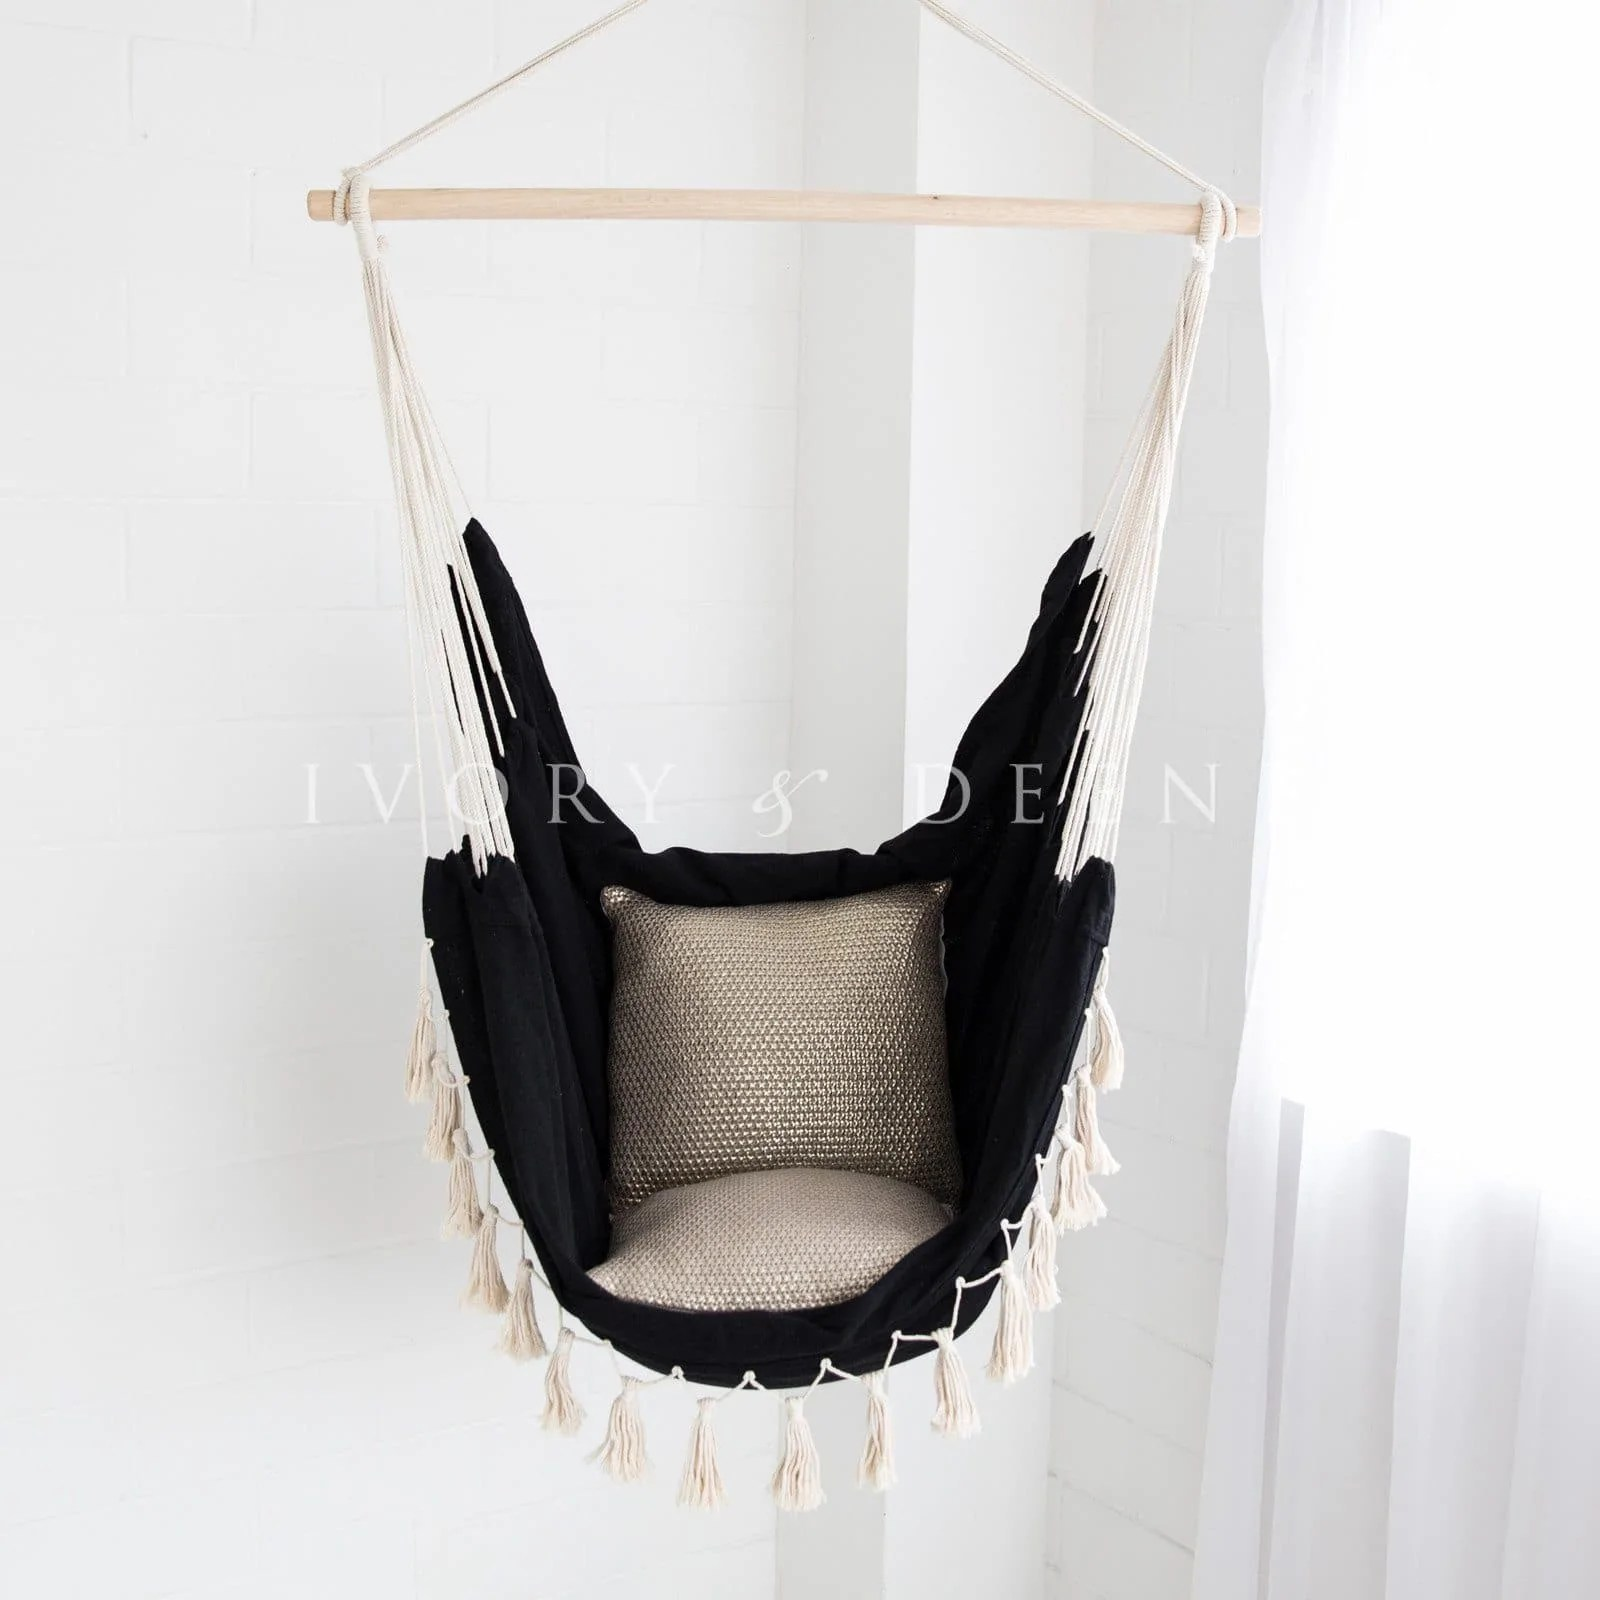 Black Hanging Chair Hammock Chair Soho Black With Tassels Ivory And Deene